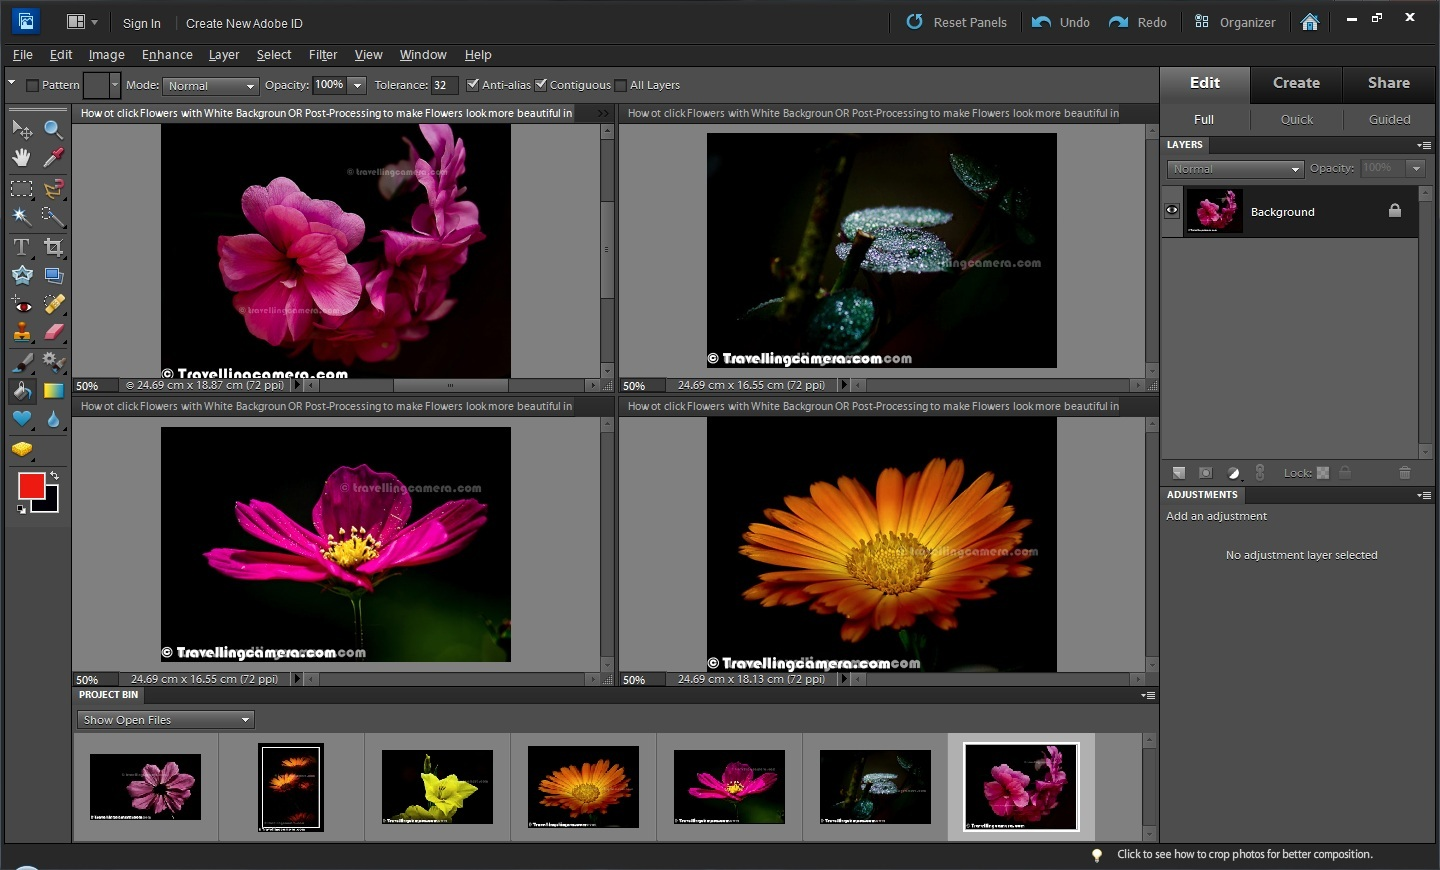 adobe photoshop cc 2018 mac torrent download